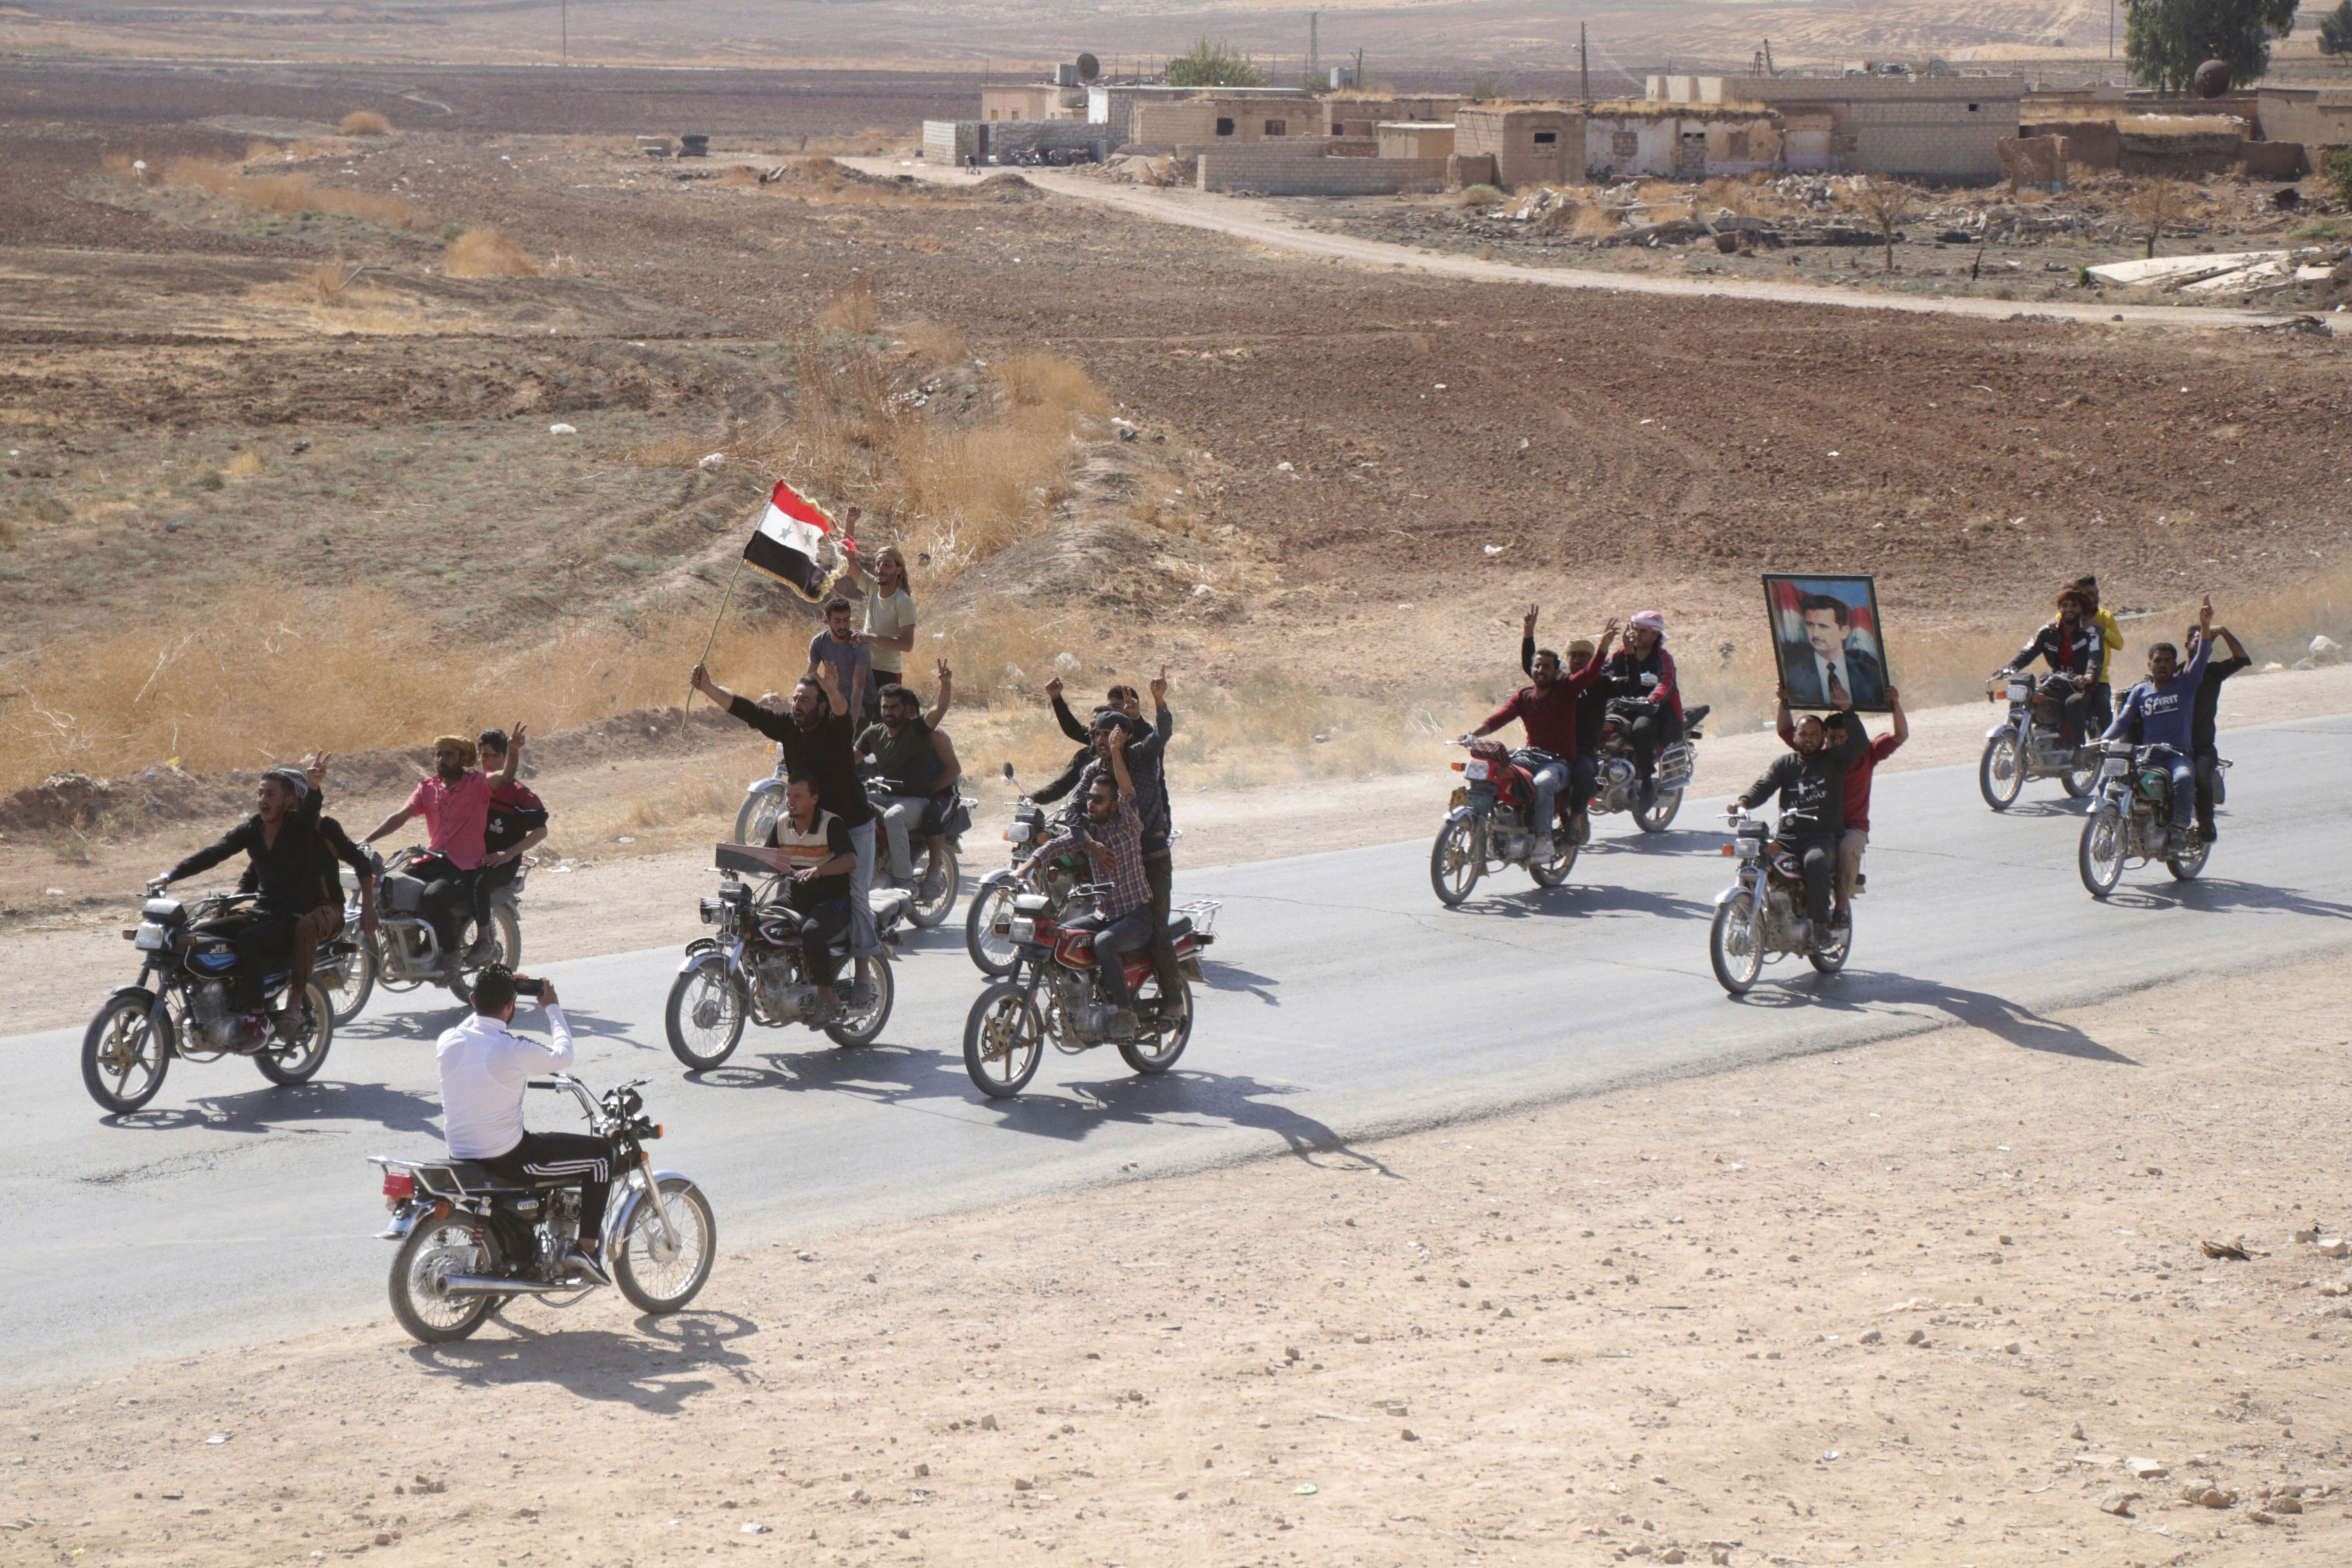 People ride motorcycles and hold a Syrian flag and a portrait of Syrian President Bashar Assad as they welcome Syrian troops as they enter the village of Ghebesh, west of the town of Tal Tamr, in northern Syria, Monday, Oct 14, 2019. Syrian government troops moved into towns and villages in northern Syria on Monday, setting up a potential clash with Turkish-led forces advancing in the area as long-standing alliances in the region begin to crumble following the pullback of U.S. forces. (AP Photo)